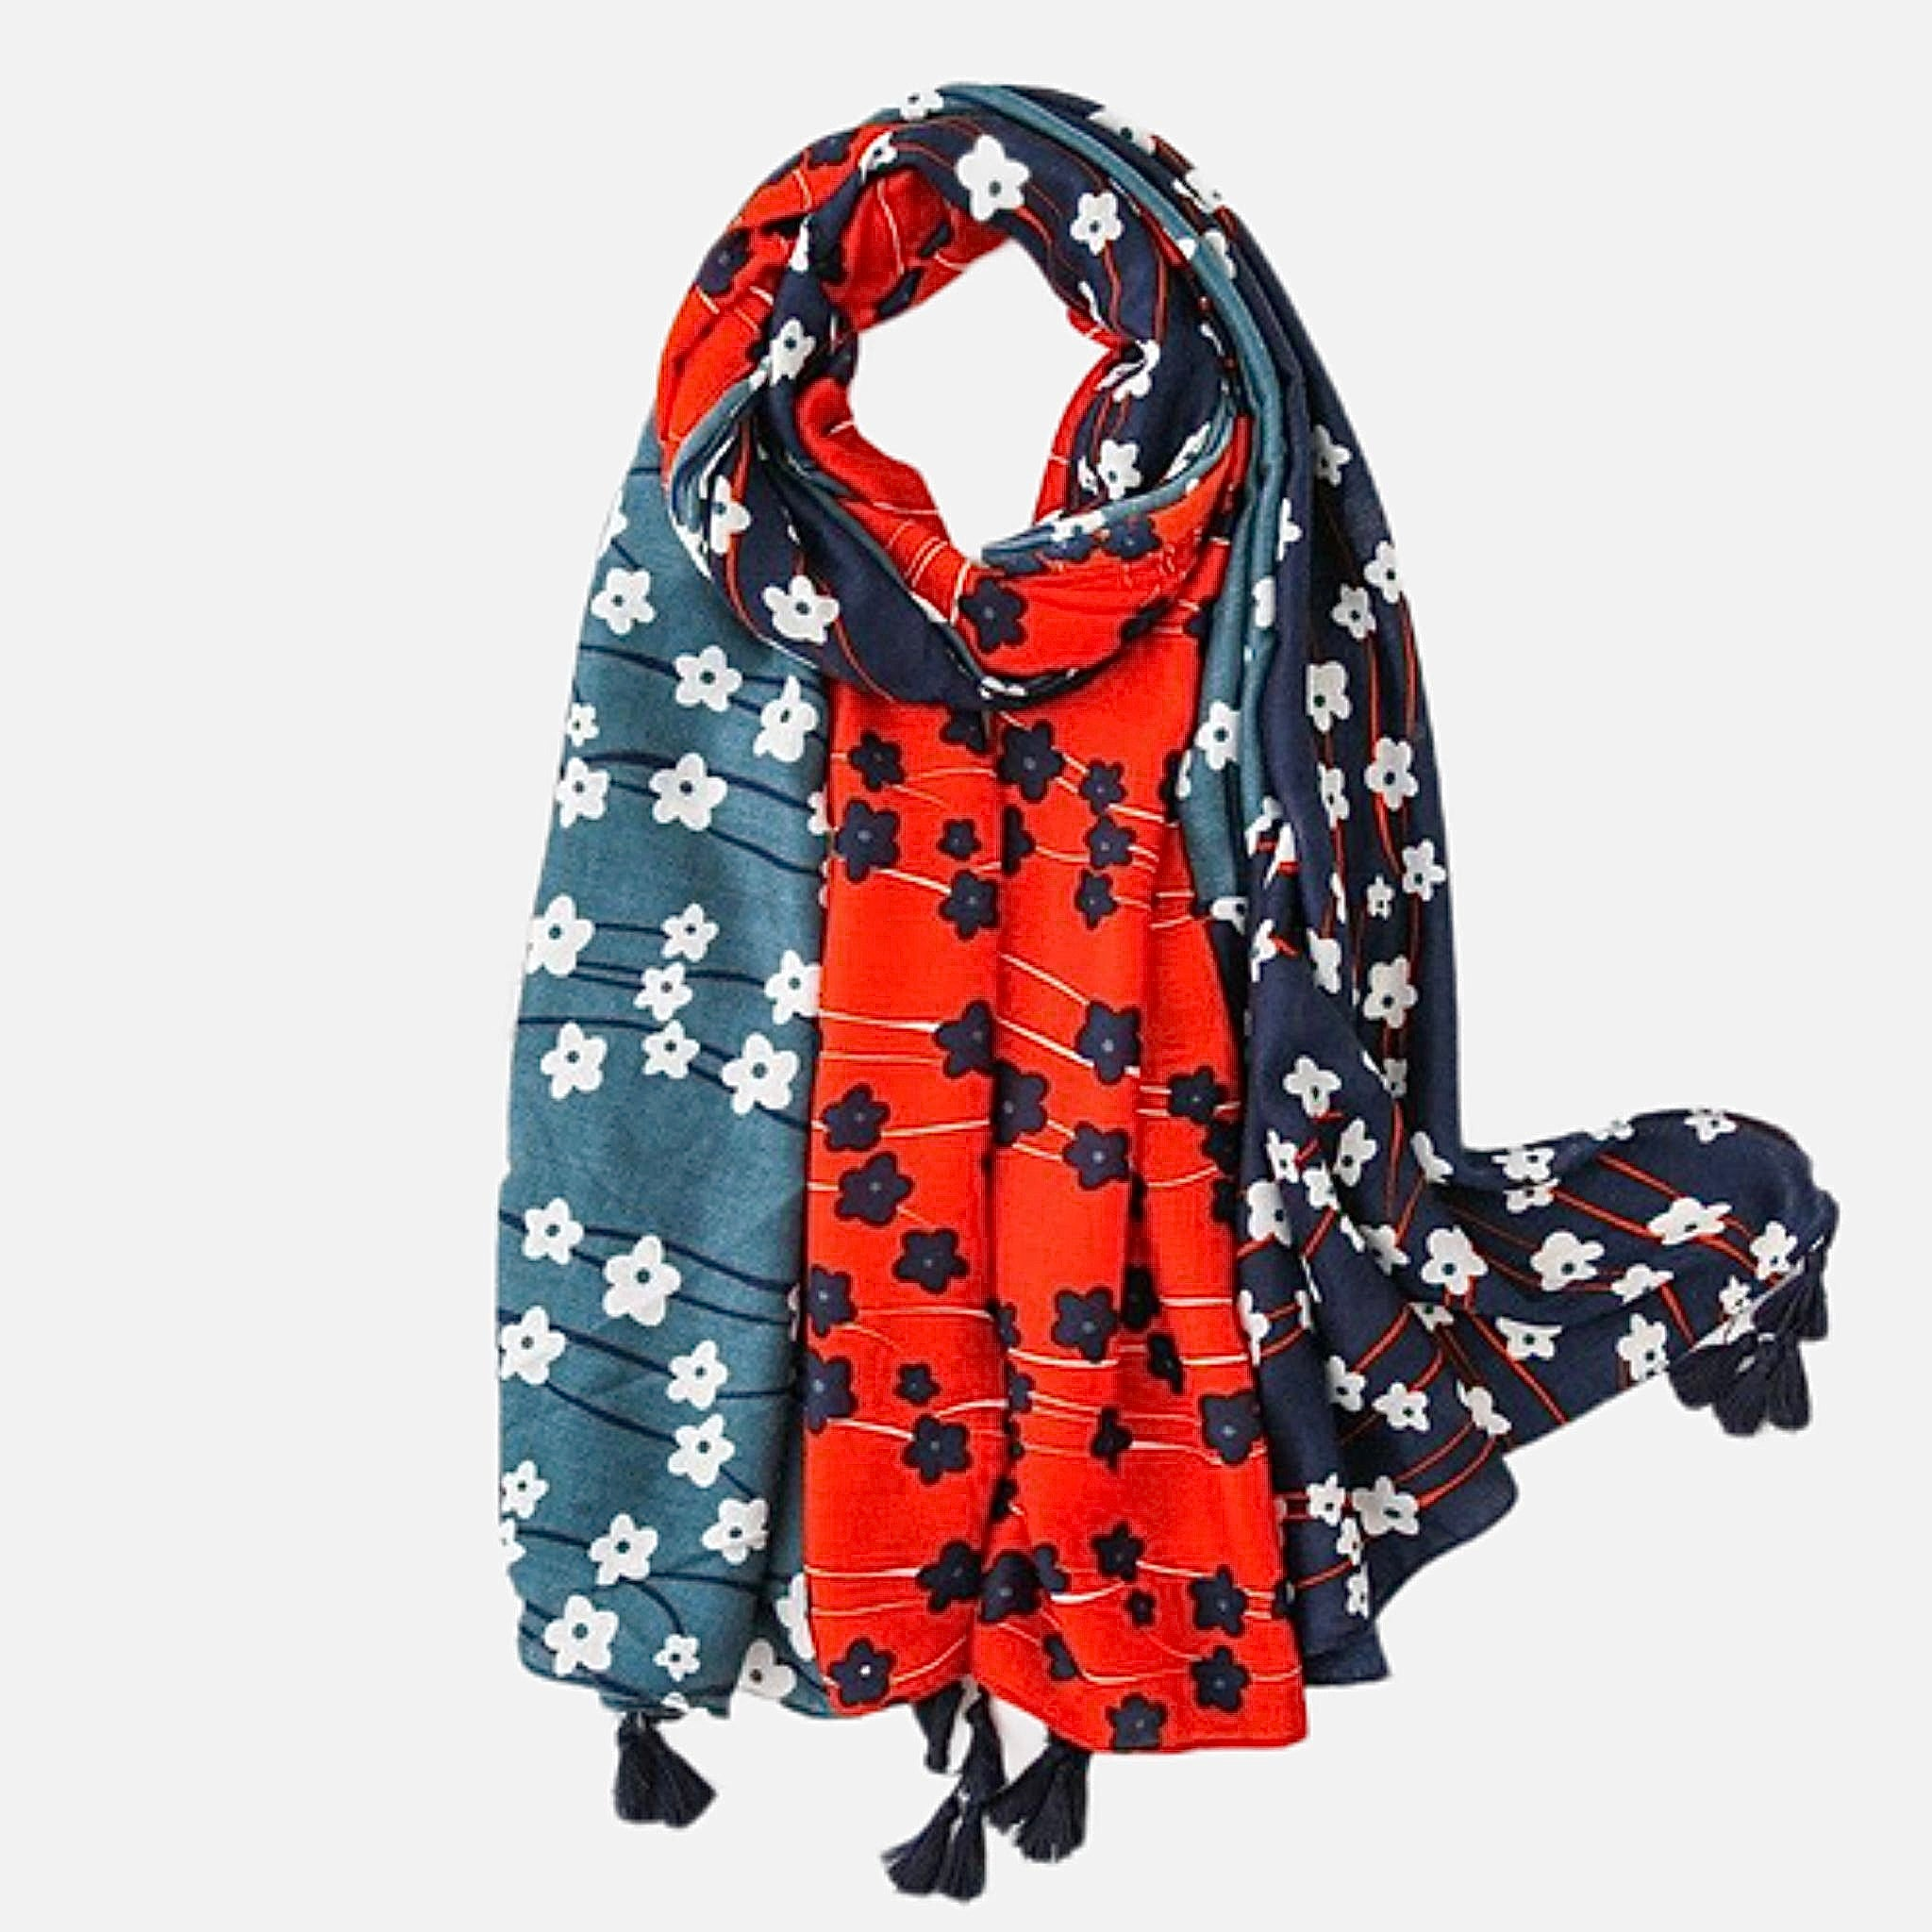 Polka Flower Viscose Scarf        Luxury Black Long Shawl and Echarpe print Beach Stole Women's Scarves